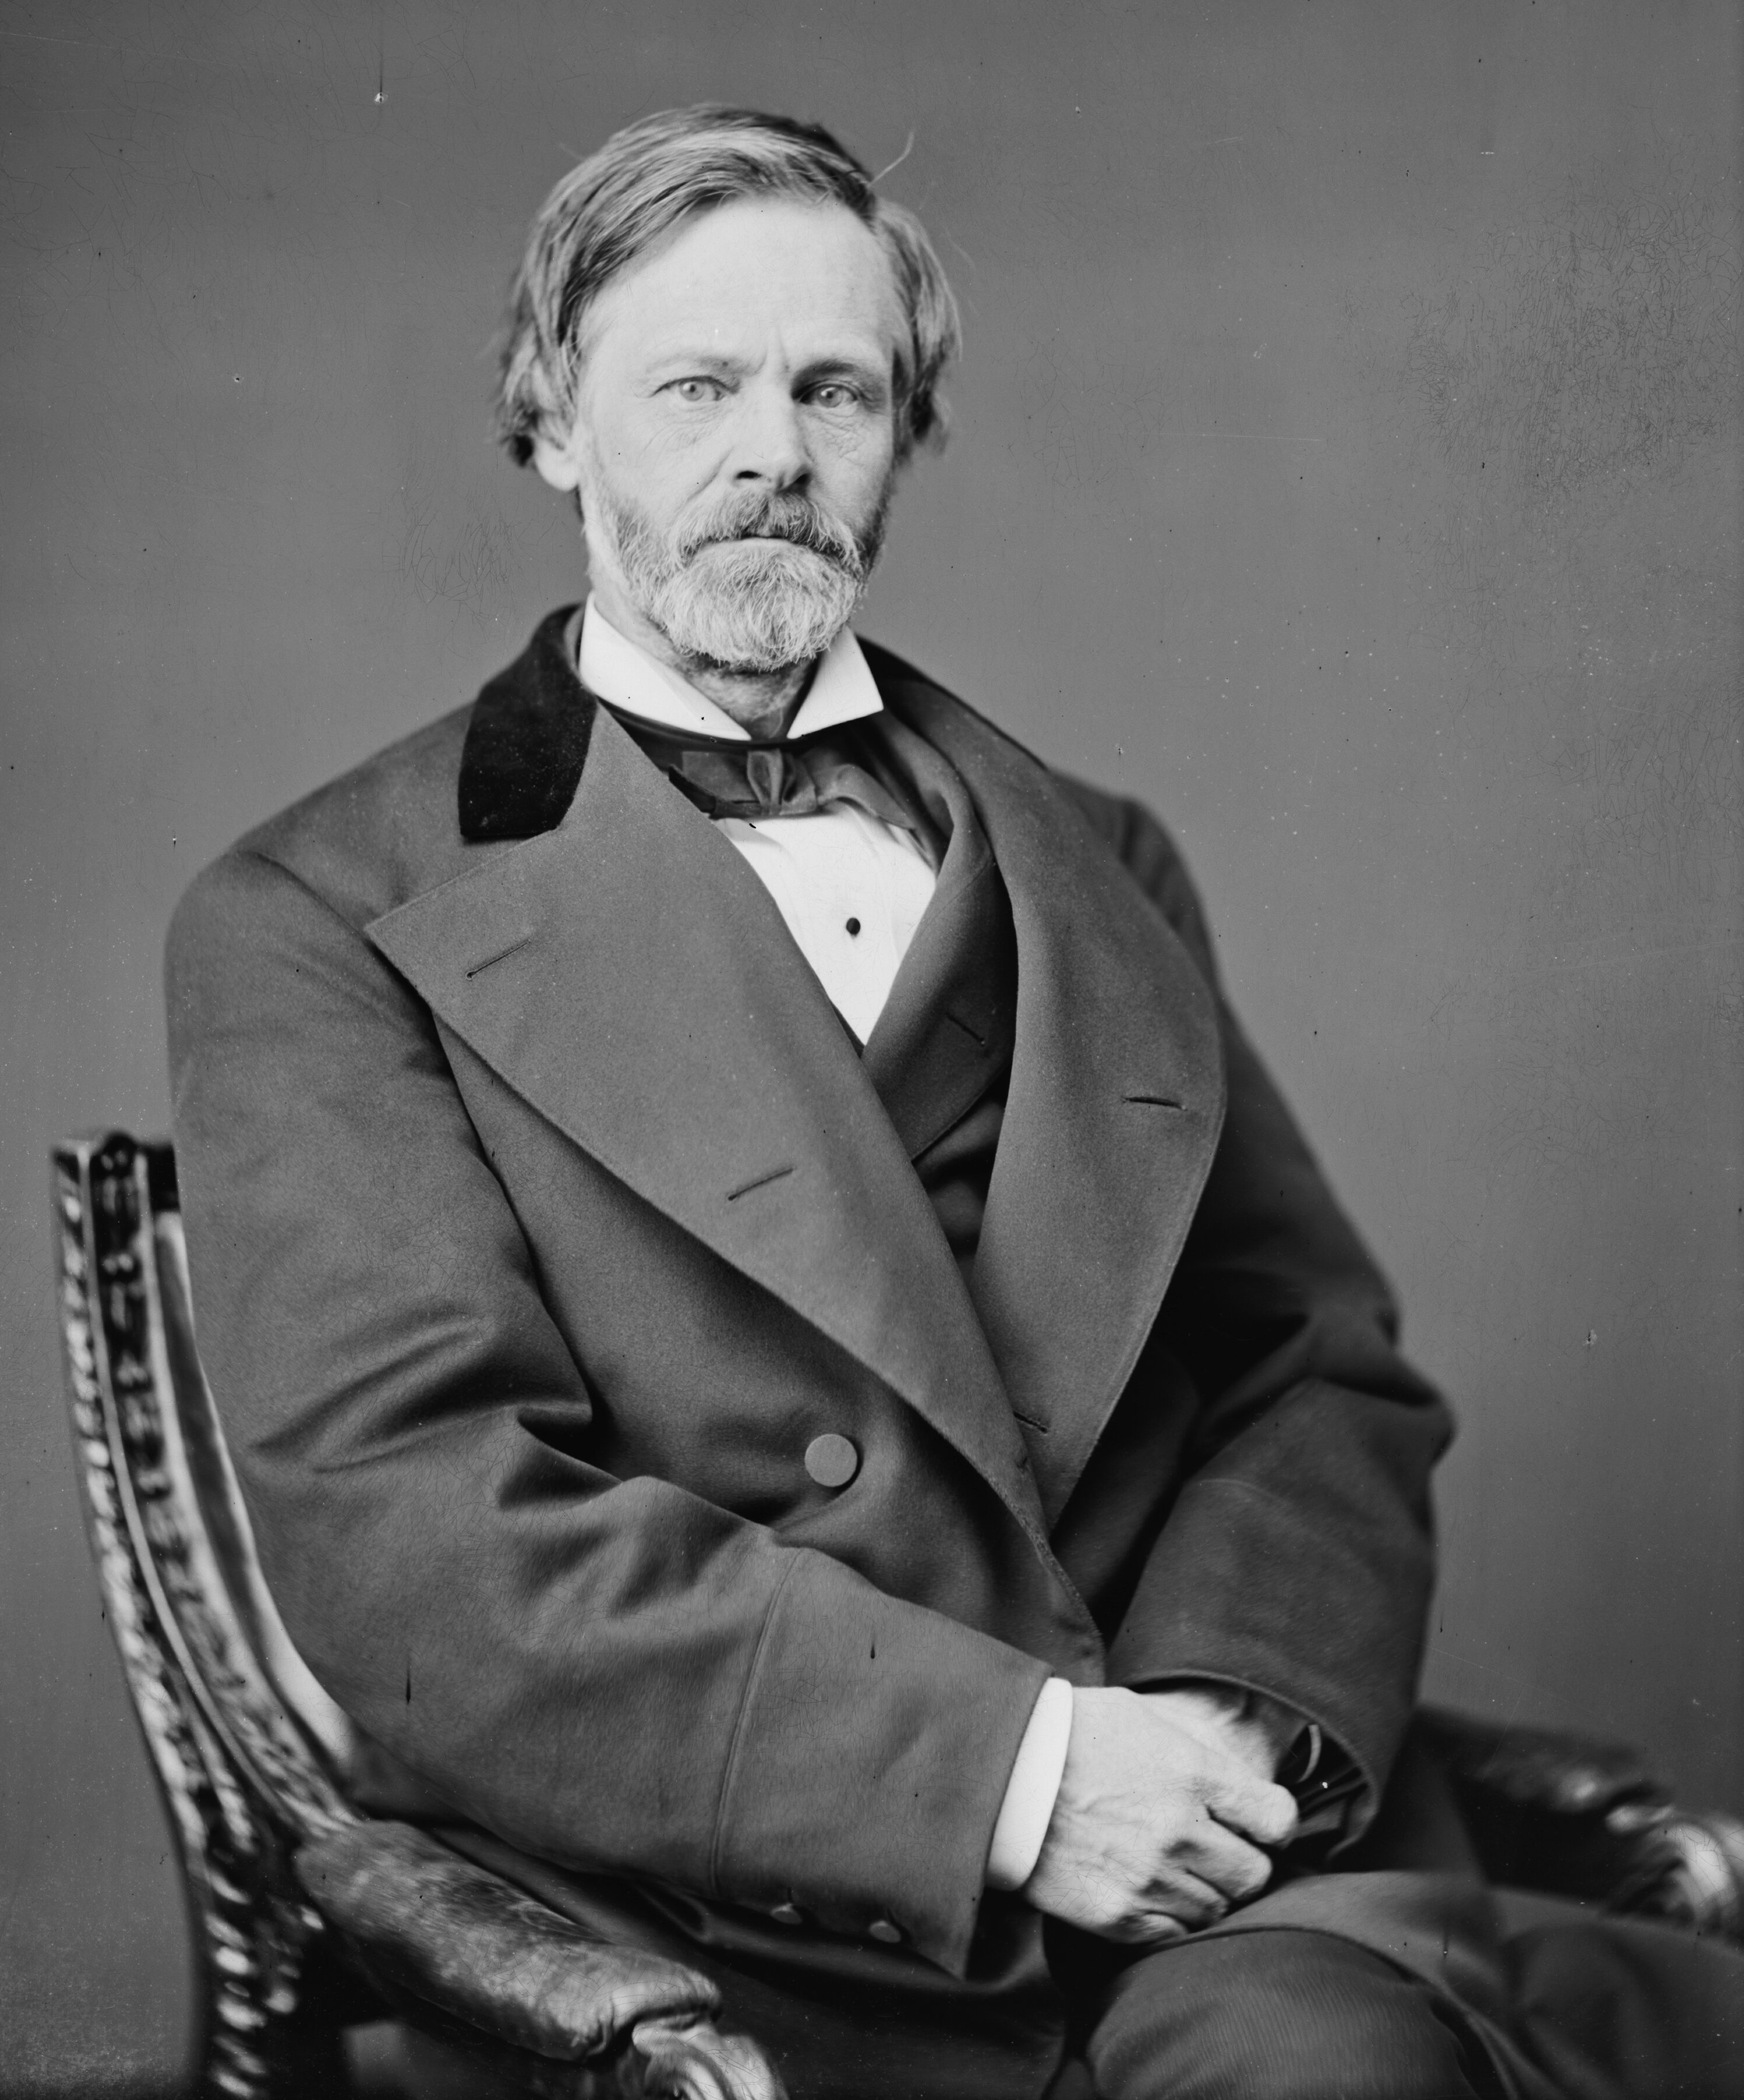 John Sherman Wikipedia